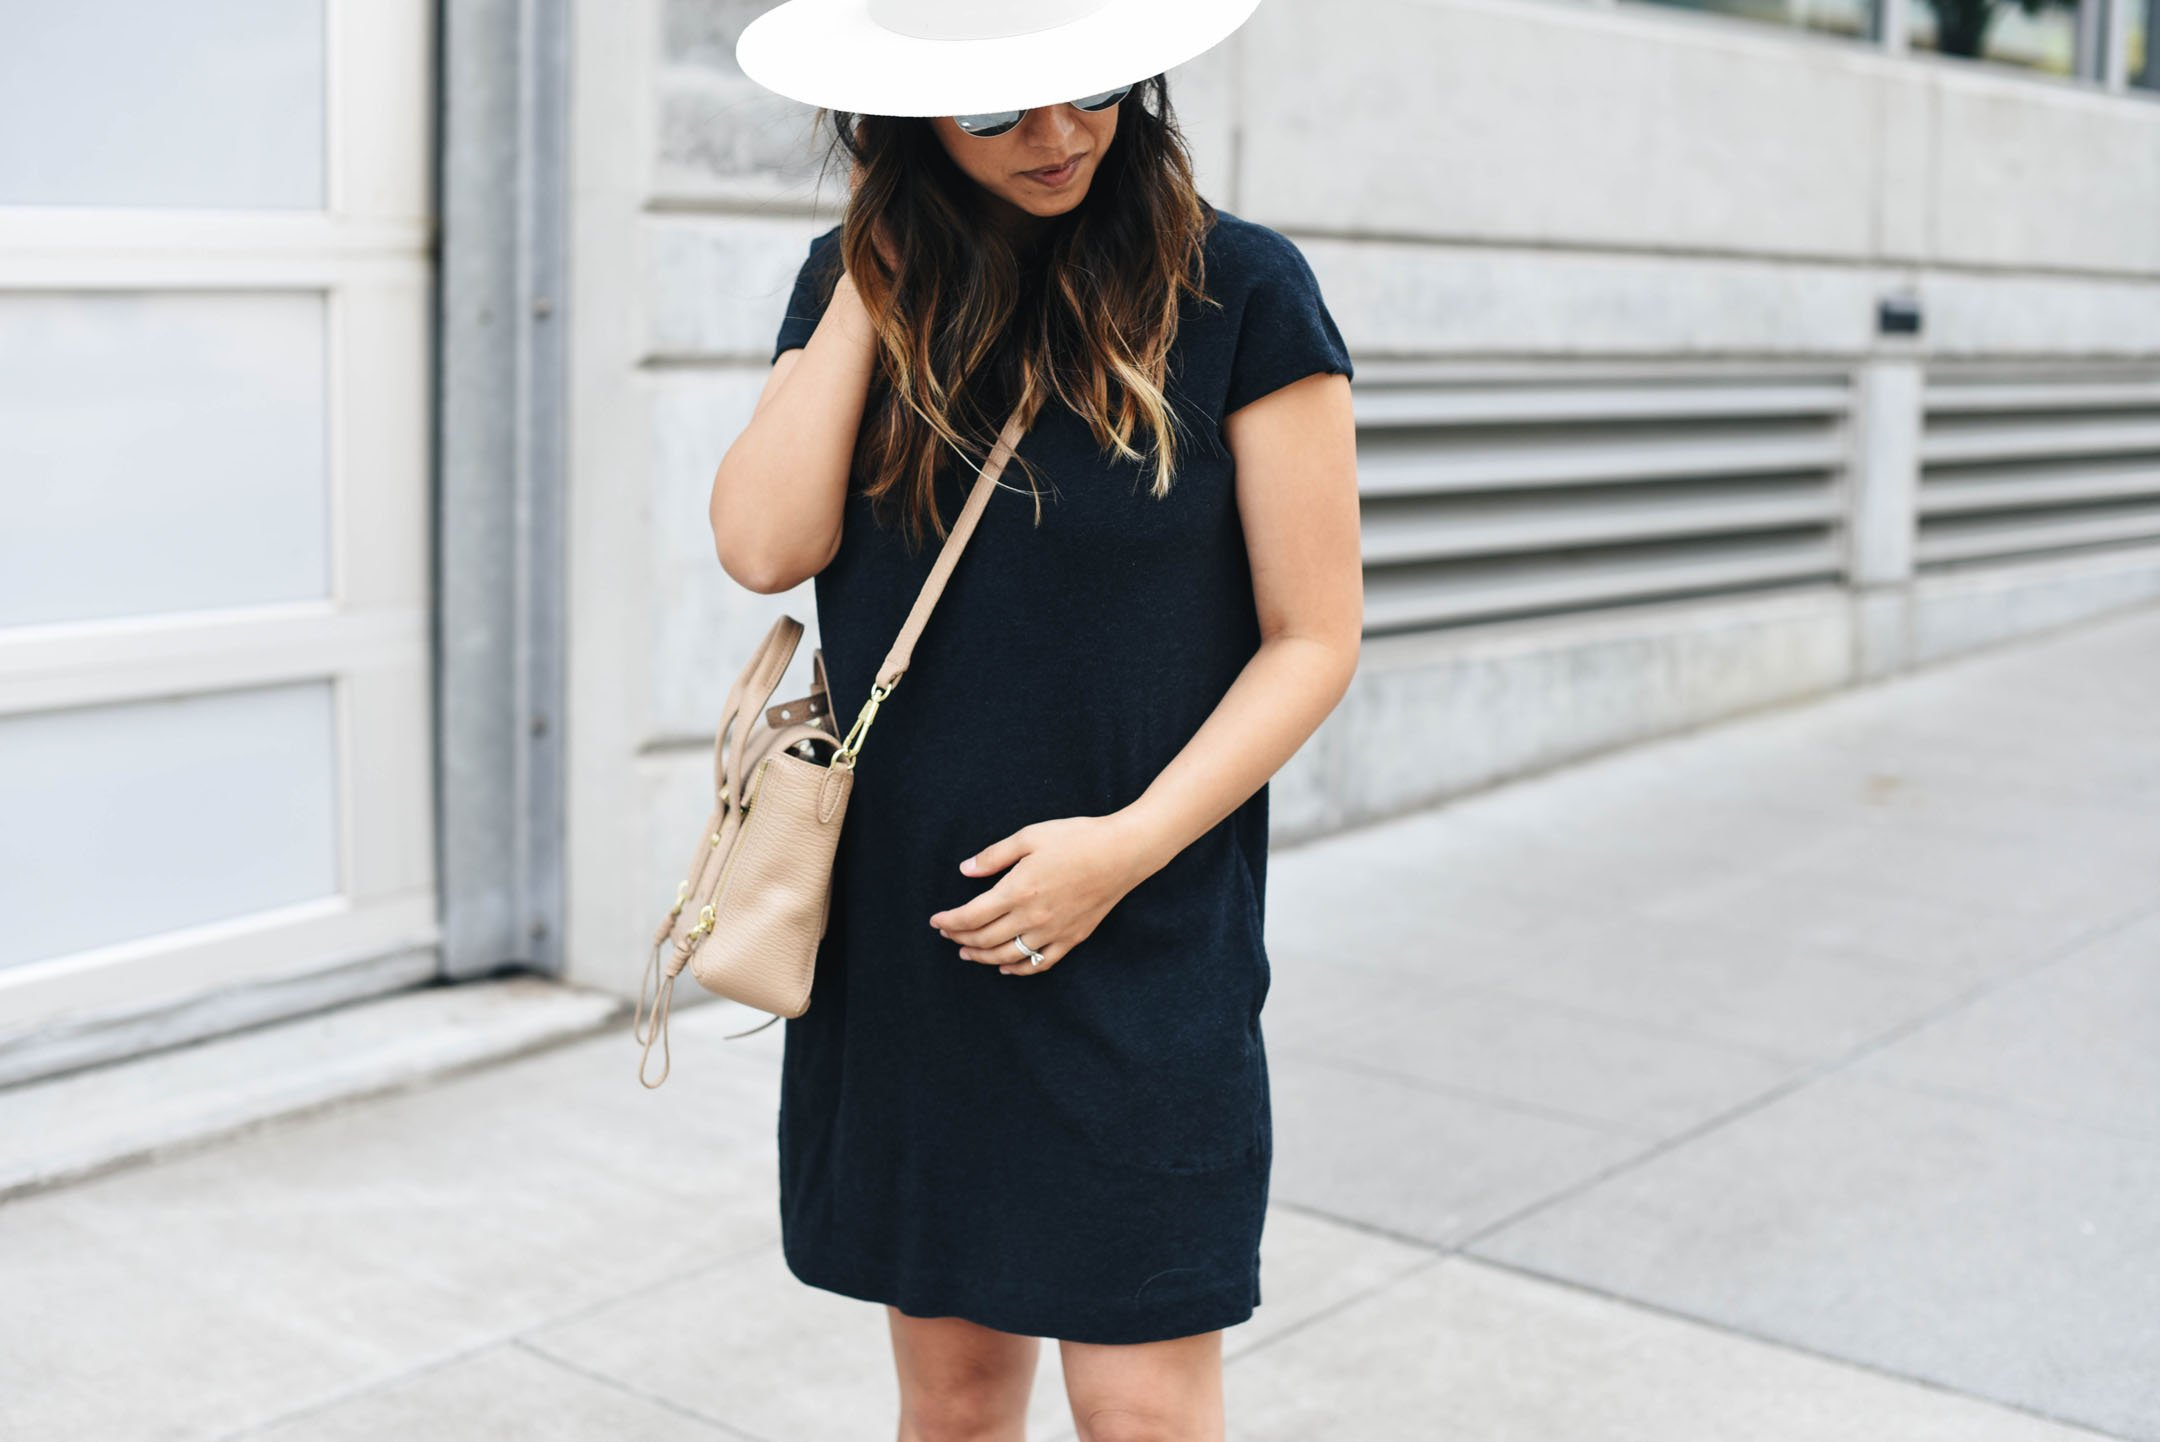 How to style your baby bump